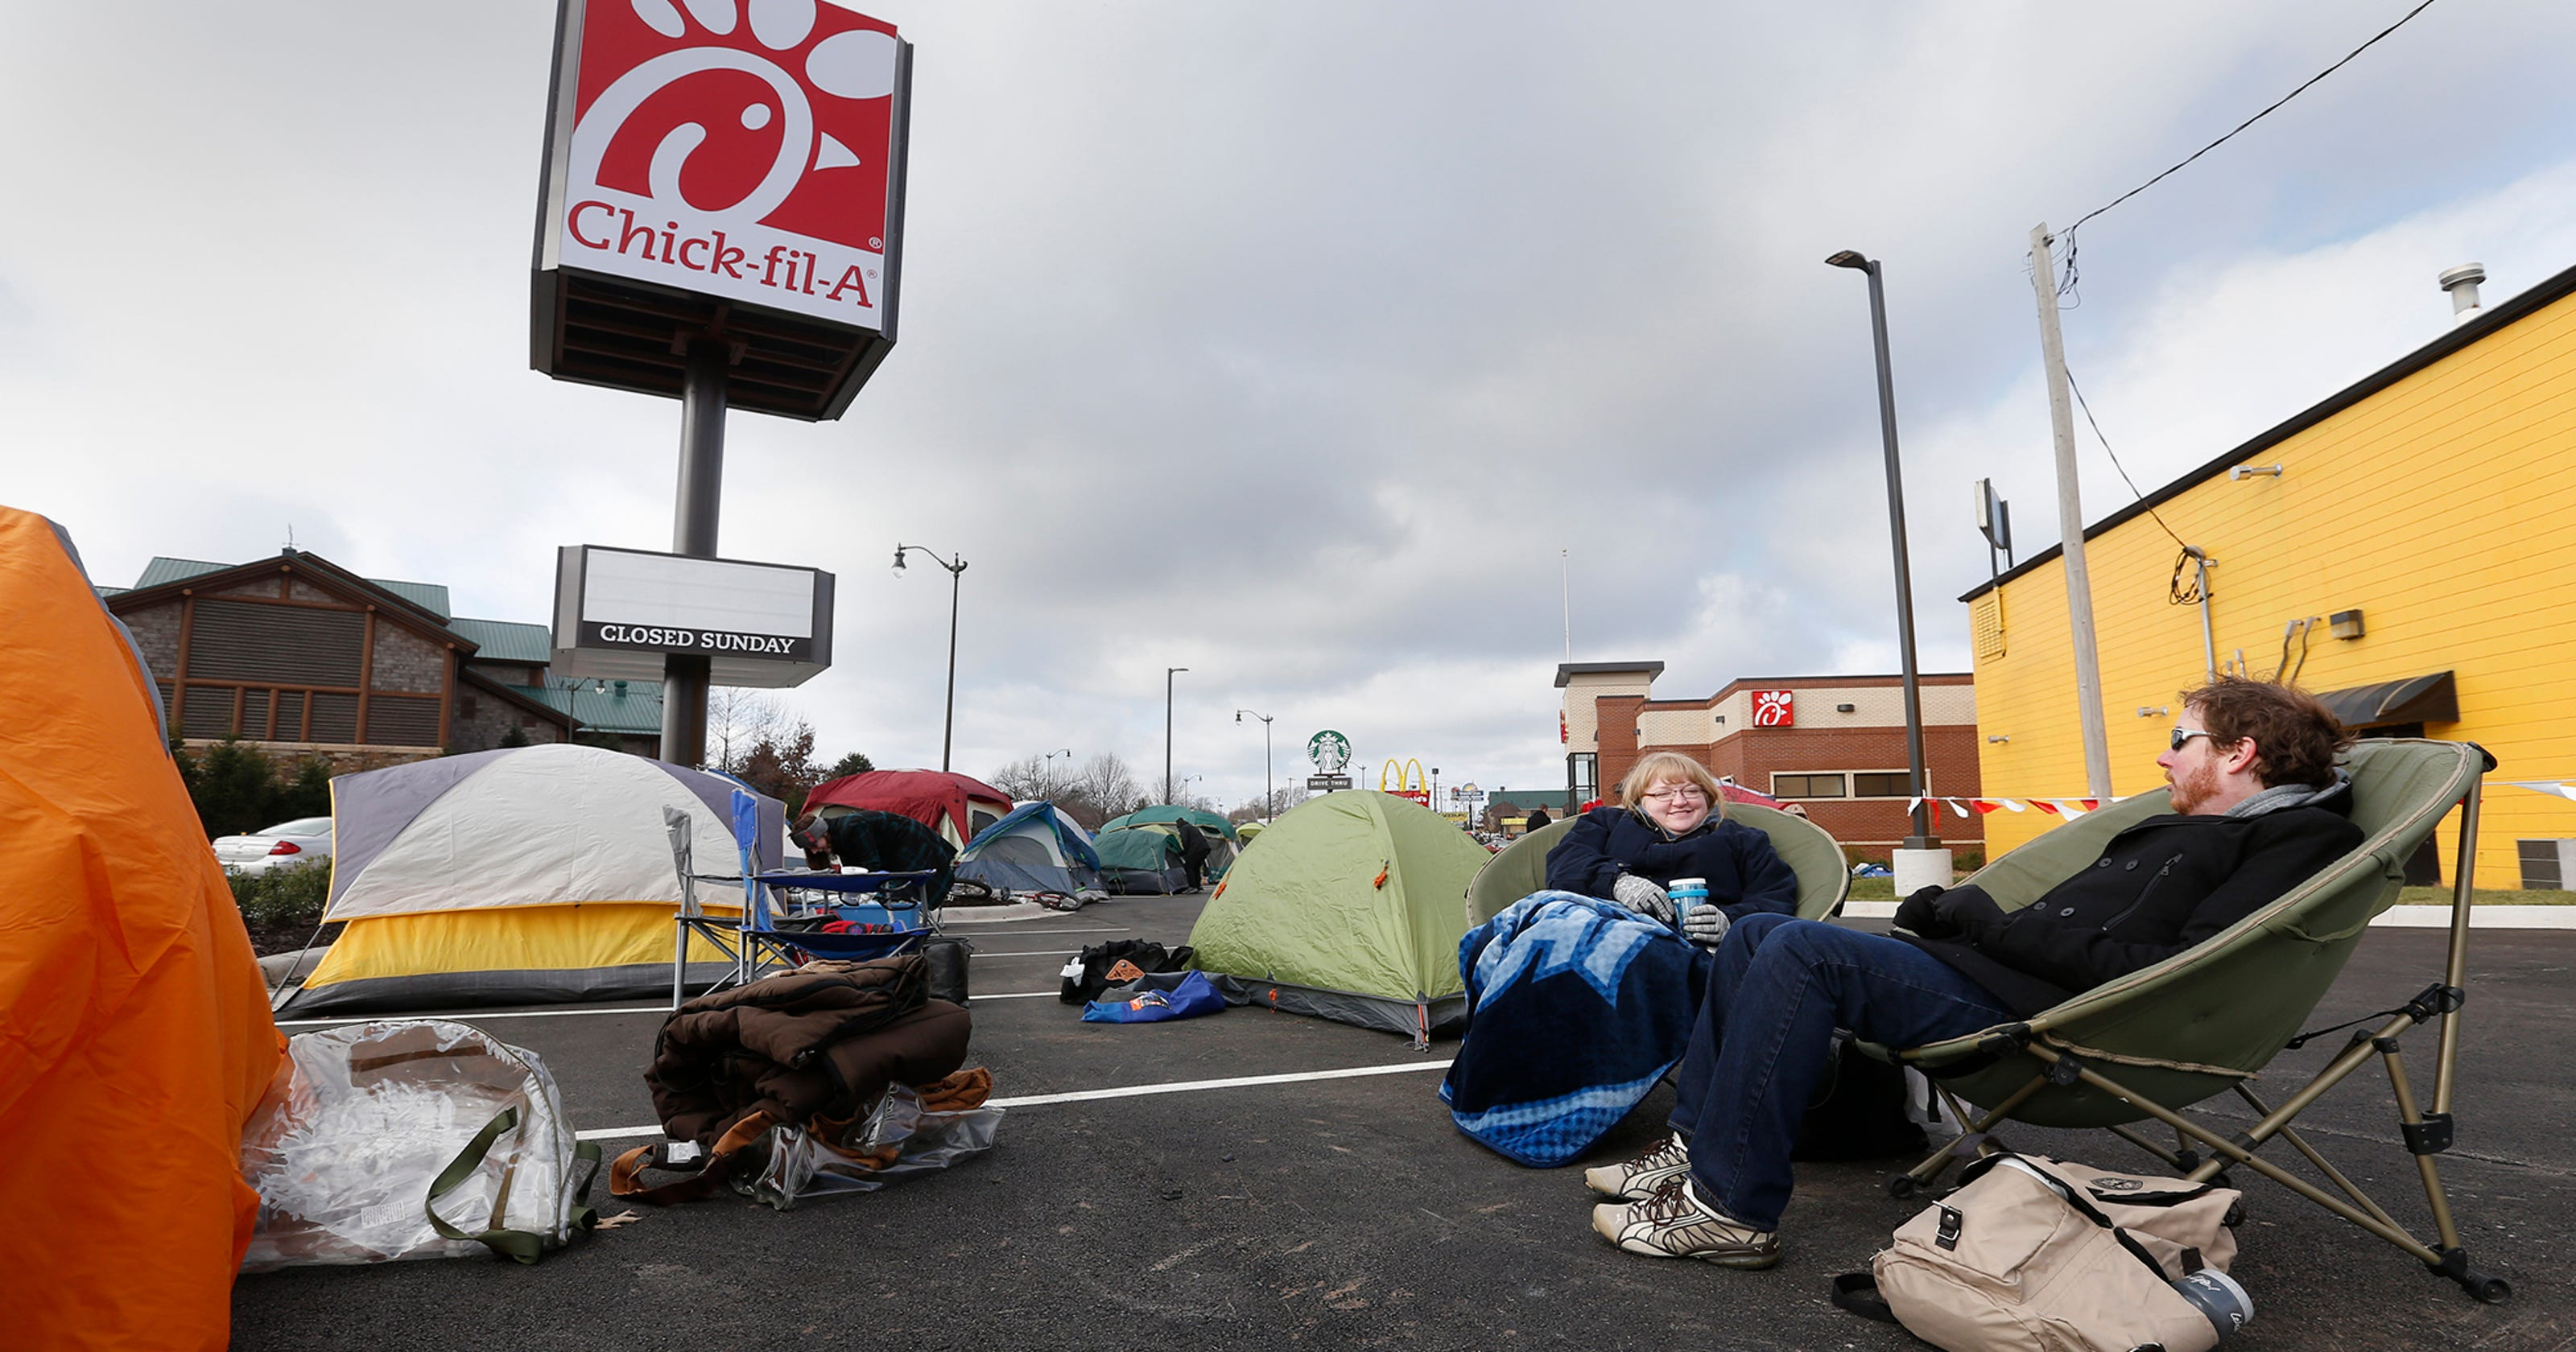 Tents go up in Chick-fil-A parking lot prior to opening